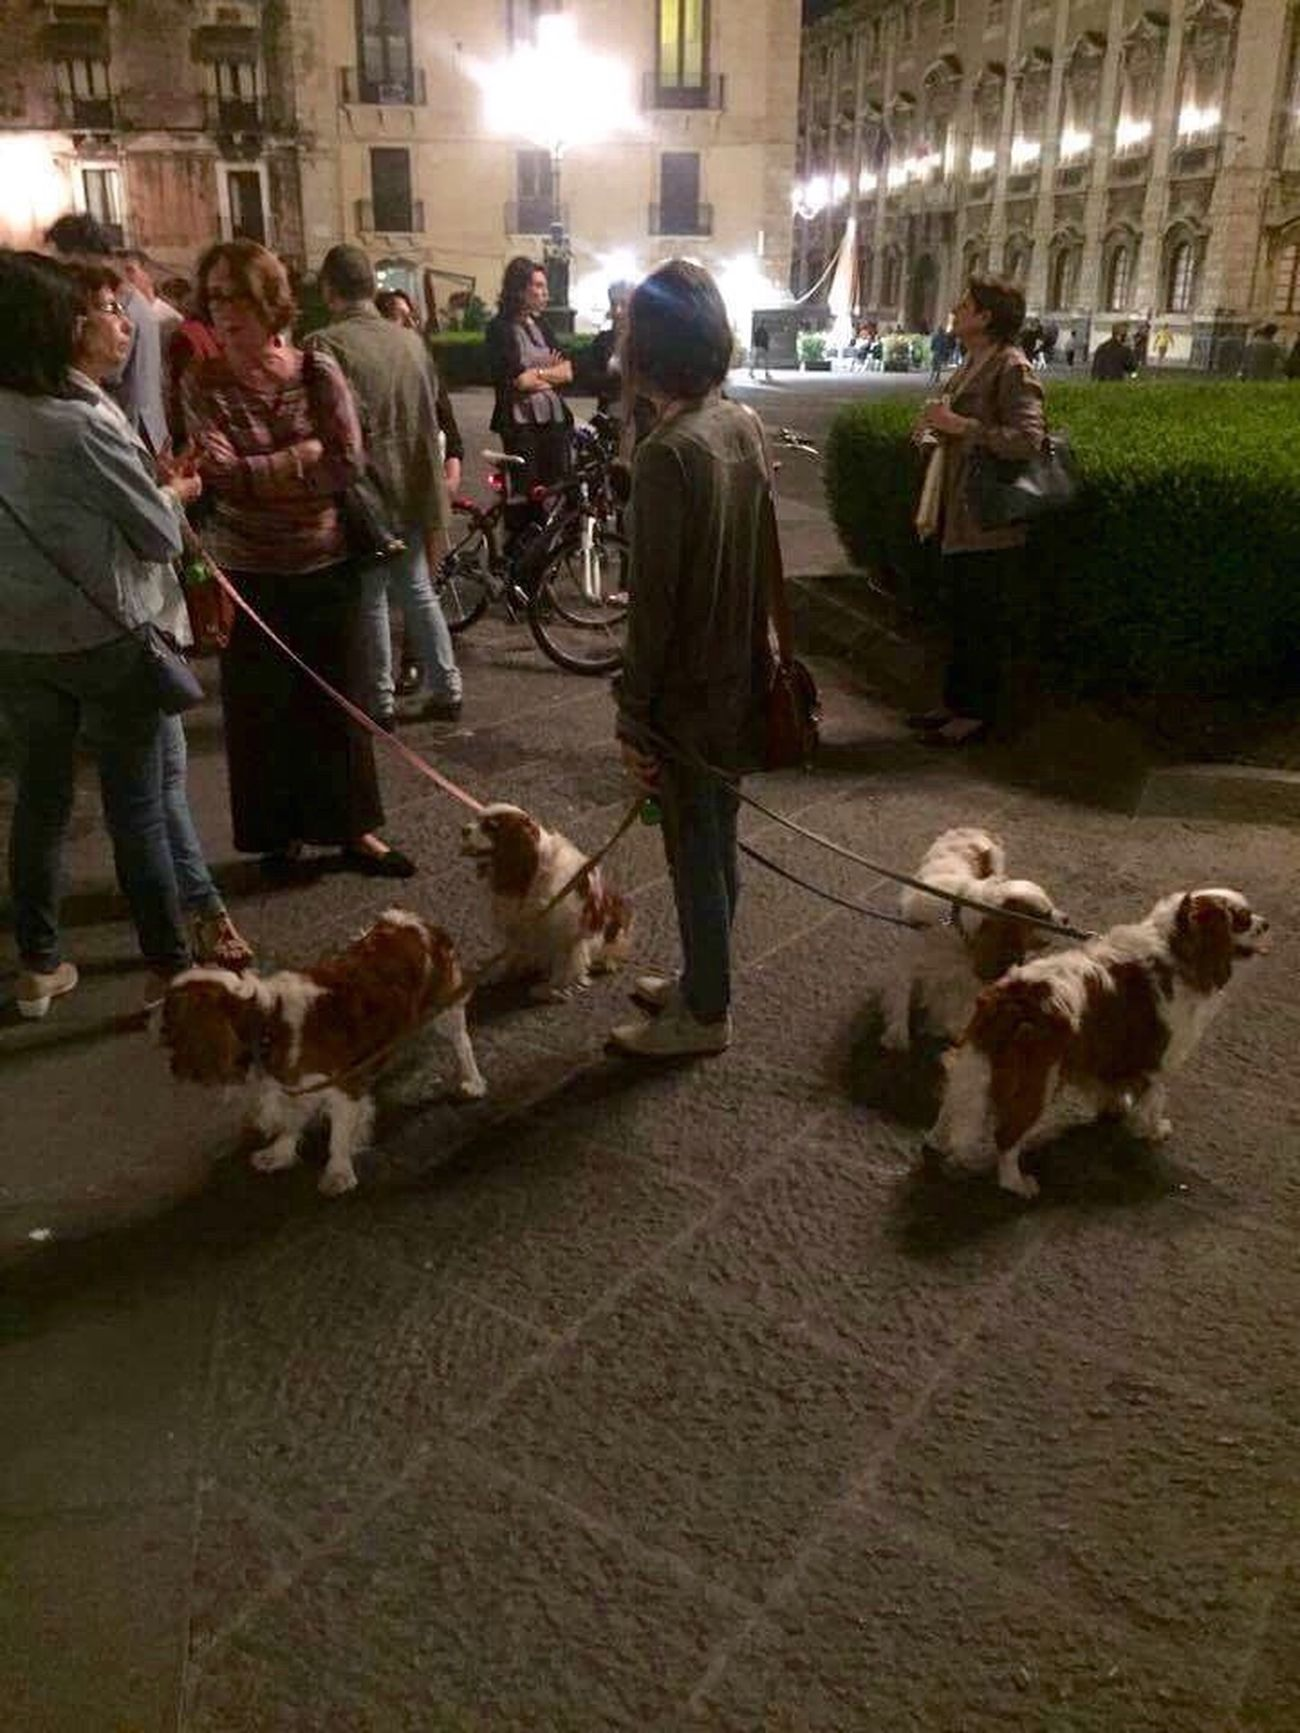 Domestic Animals Pets Outdoors Adults Only Bunch Of Dogs Cavalier King Charles Spaniel No Filters Or Effects Eyemstreetphoto Nightphotography Night Lights Nightshot The Street Photographer - 2017 EyeEm Awards Real People Mycity Catania, Sicily